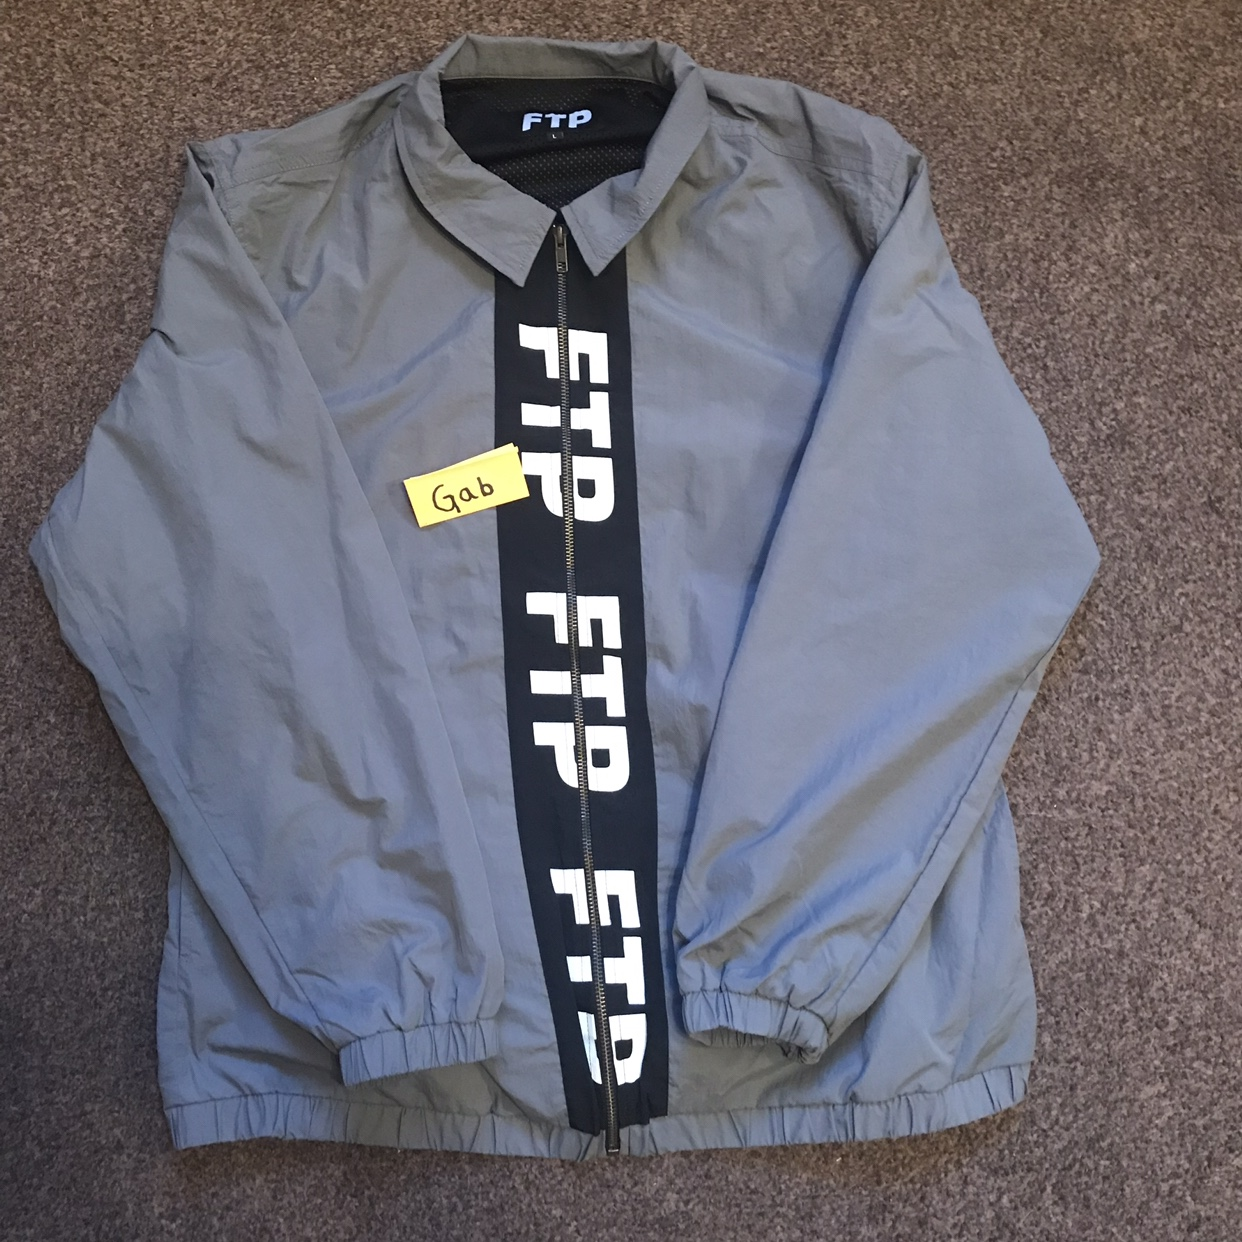 FTP shell/track/coach jacket Size Large Taken out of    - Depop